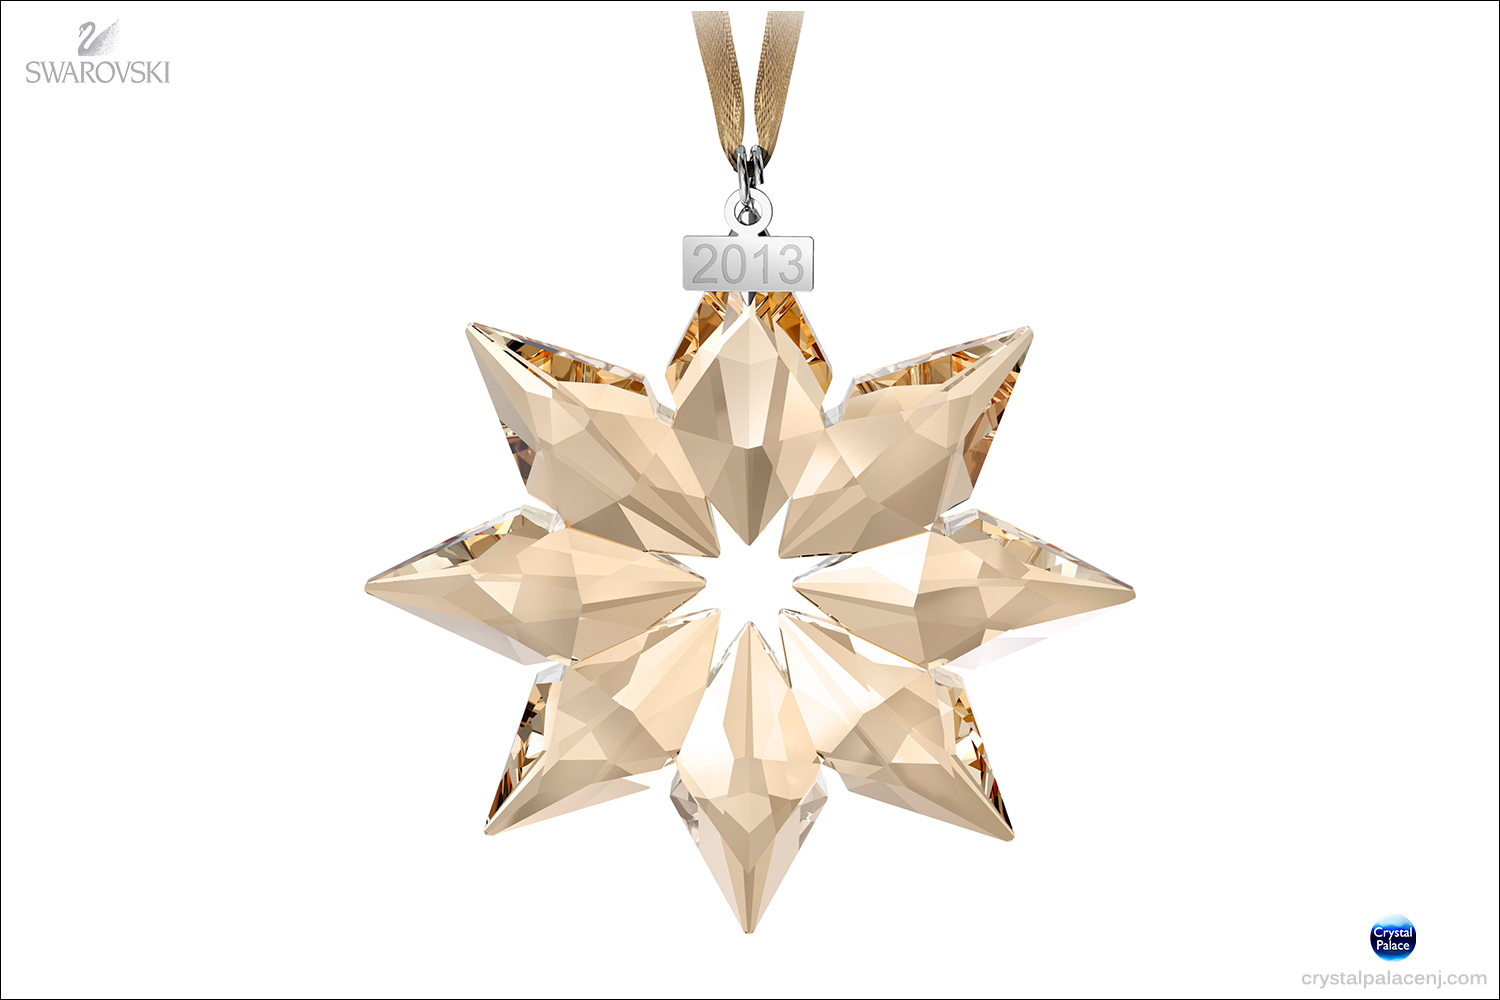 Beautiful Swarovski Christmas Ornaments Part - 10: (SOLD OUT) SCS Christmas Ornament, Annual Edition 2013